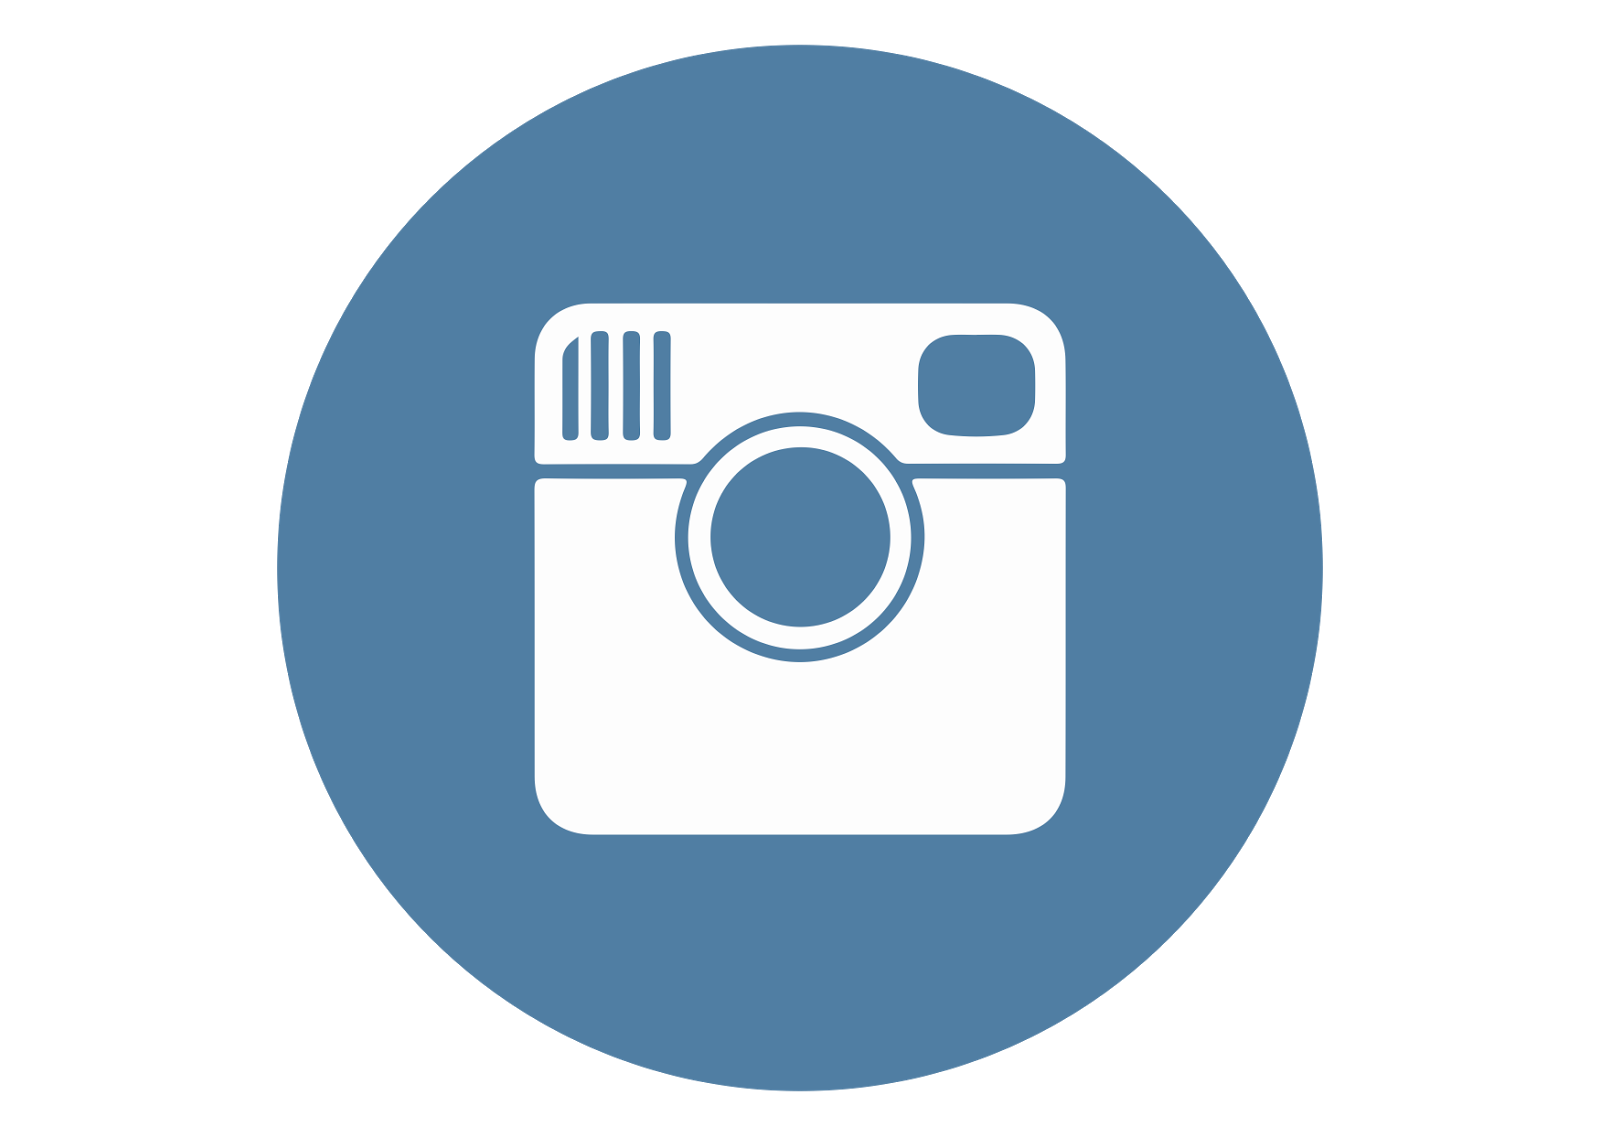 Instagram Logo Transparent Background 11 13586